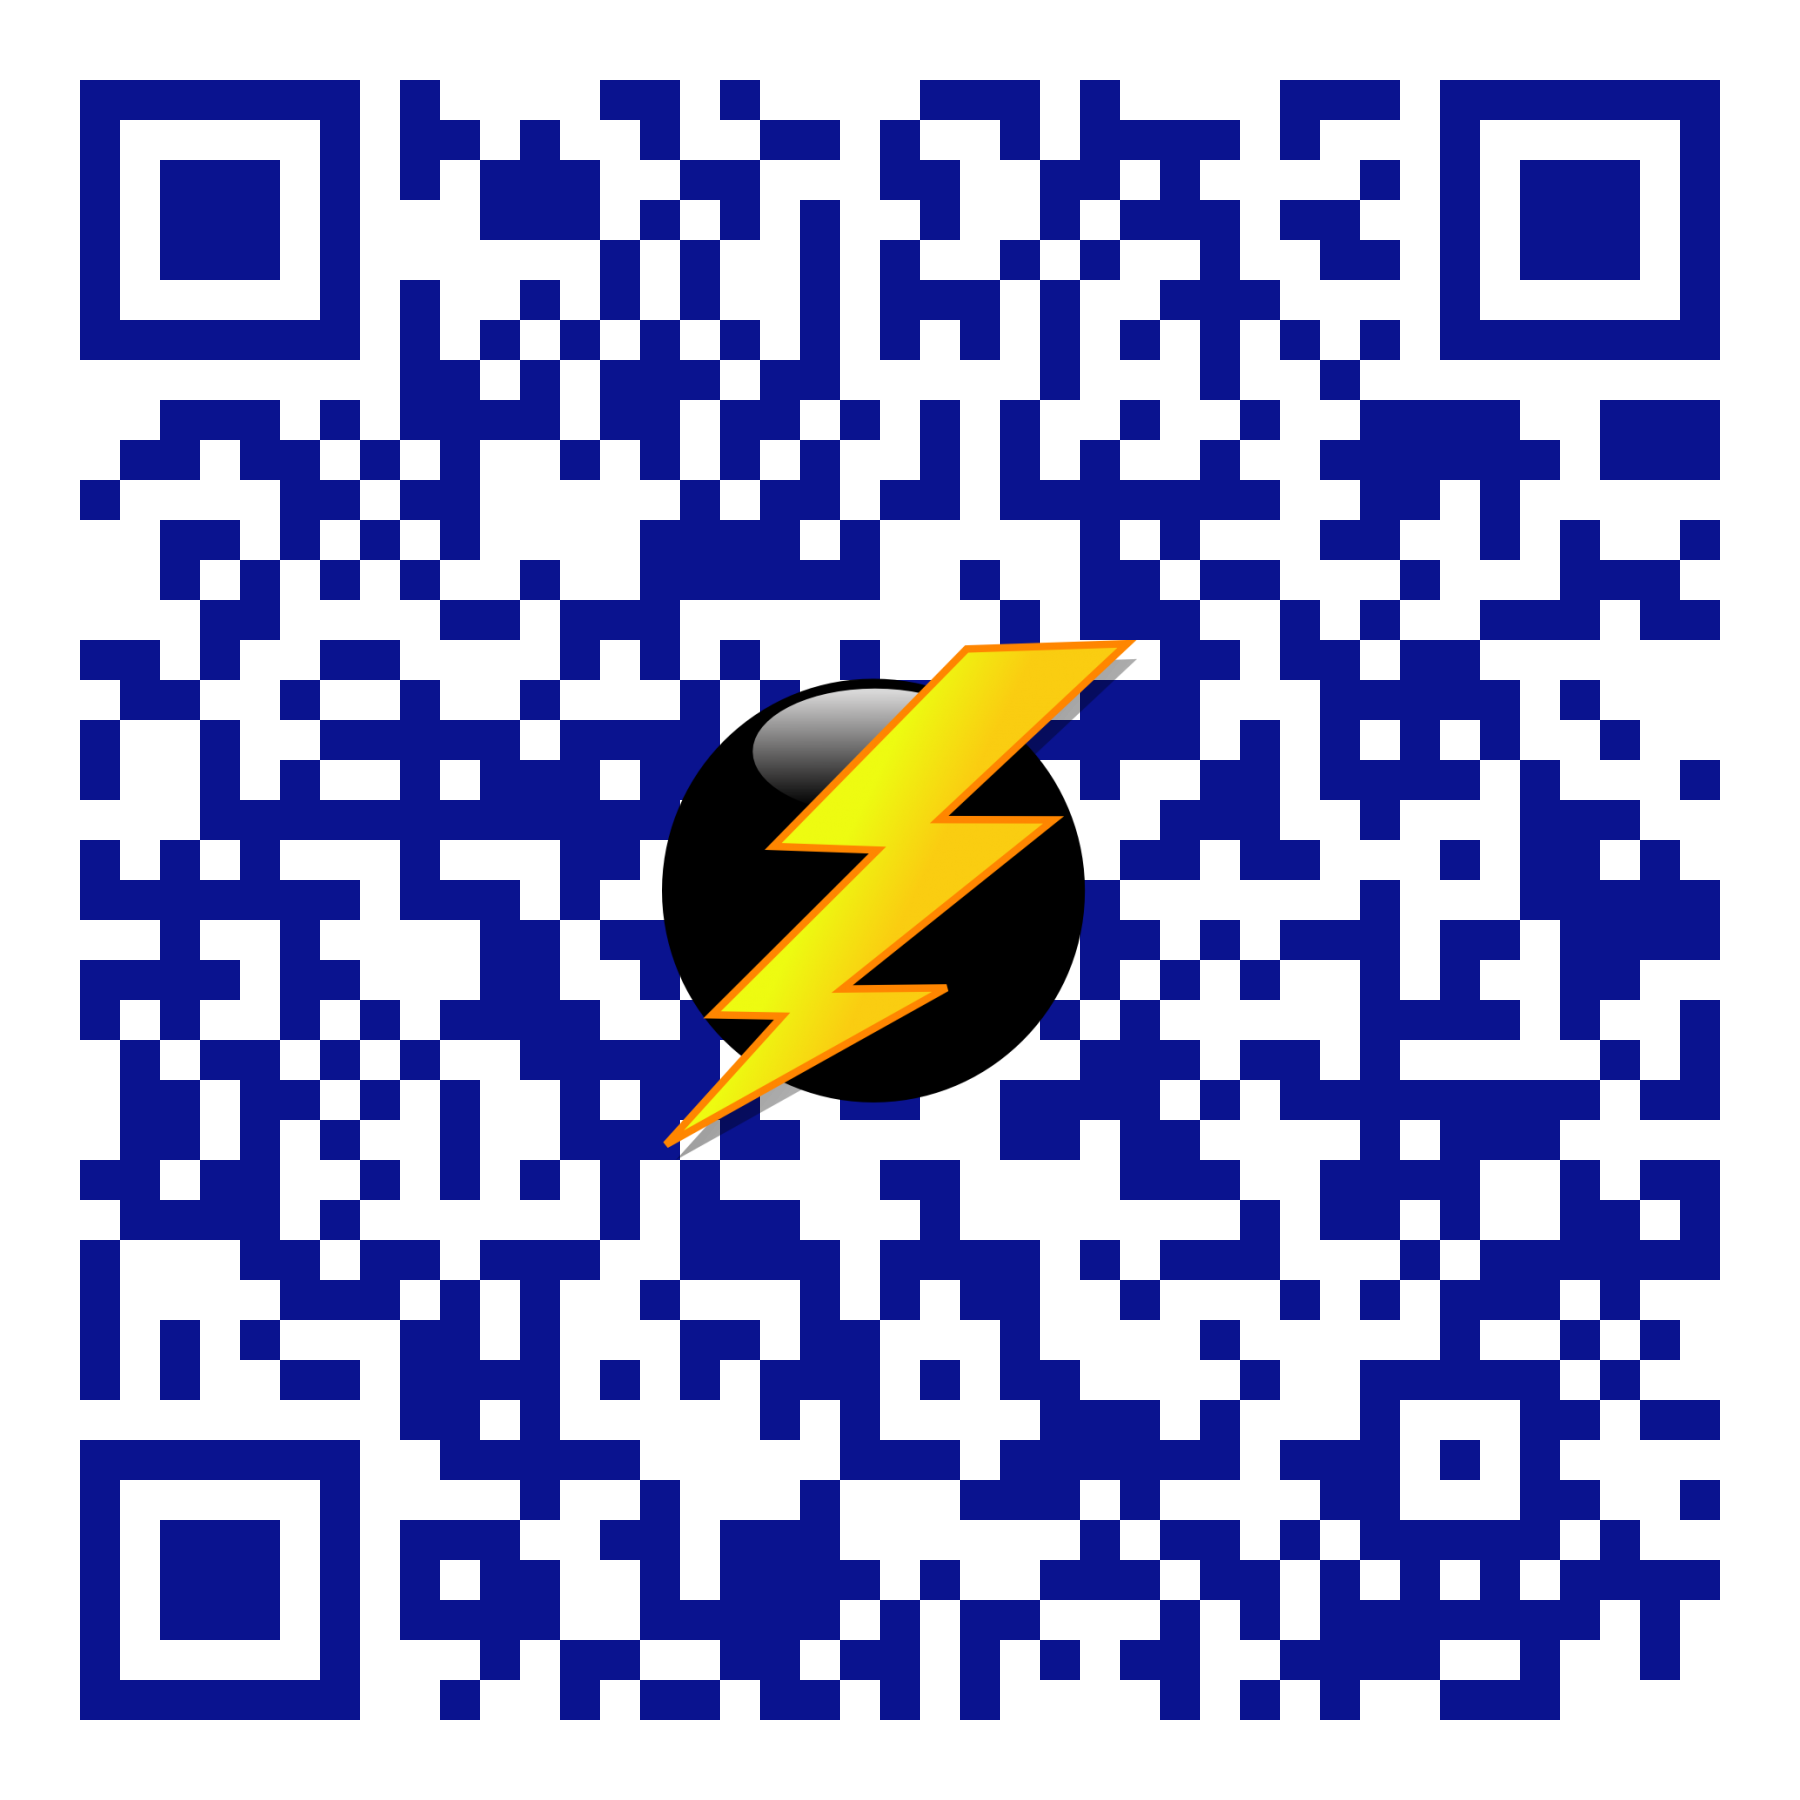 www.LightningSurgeProtectionMalaysia.com